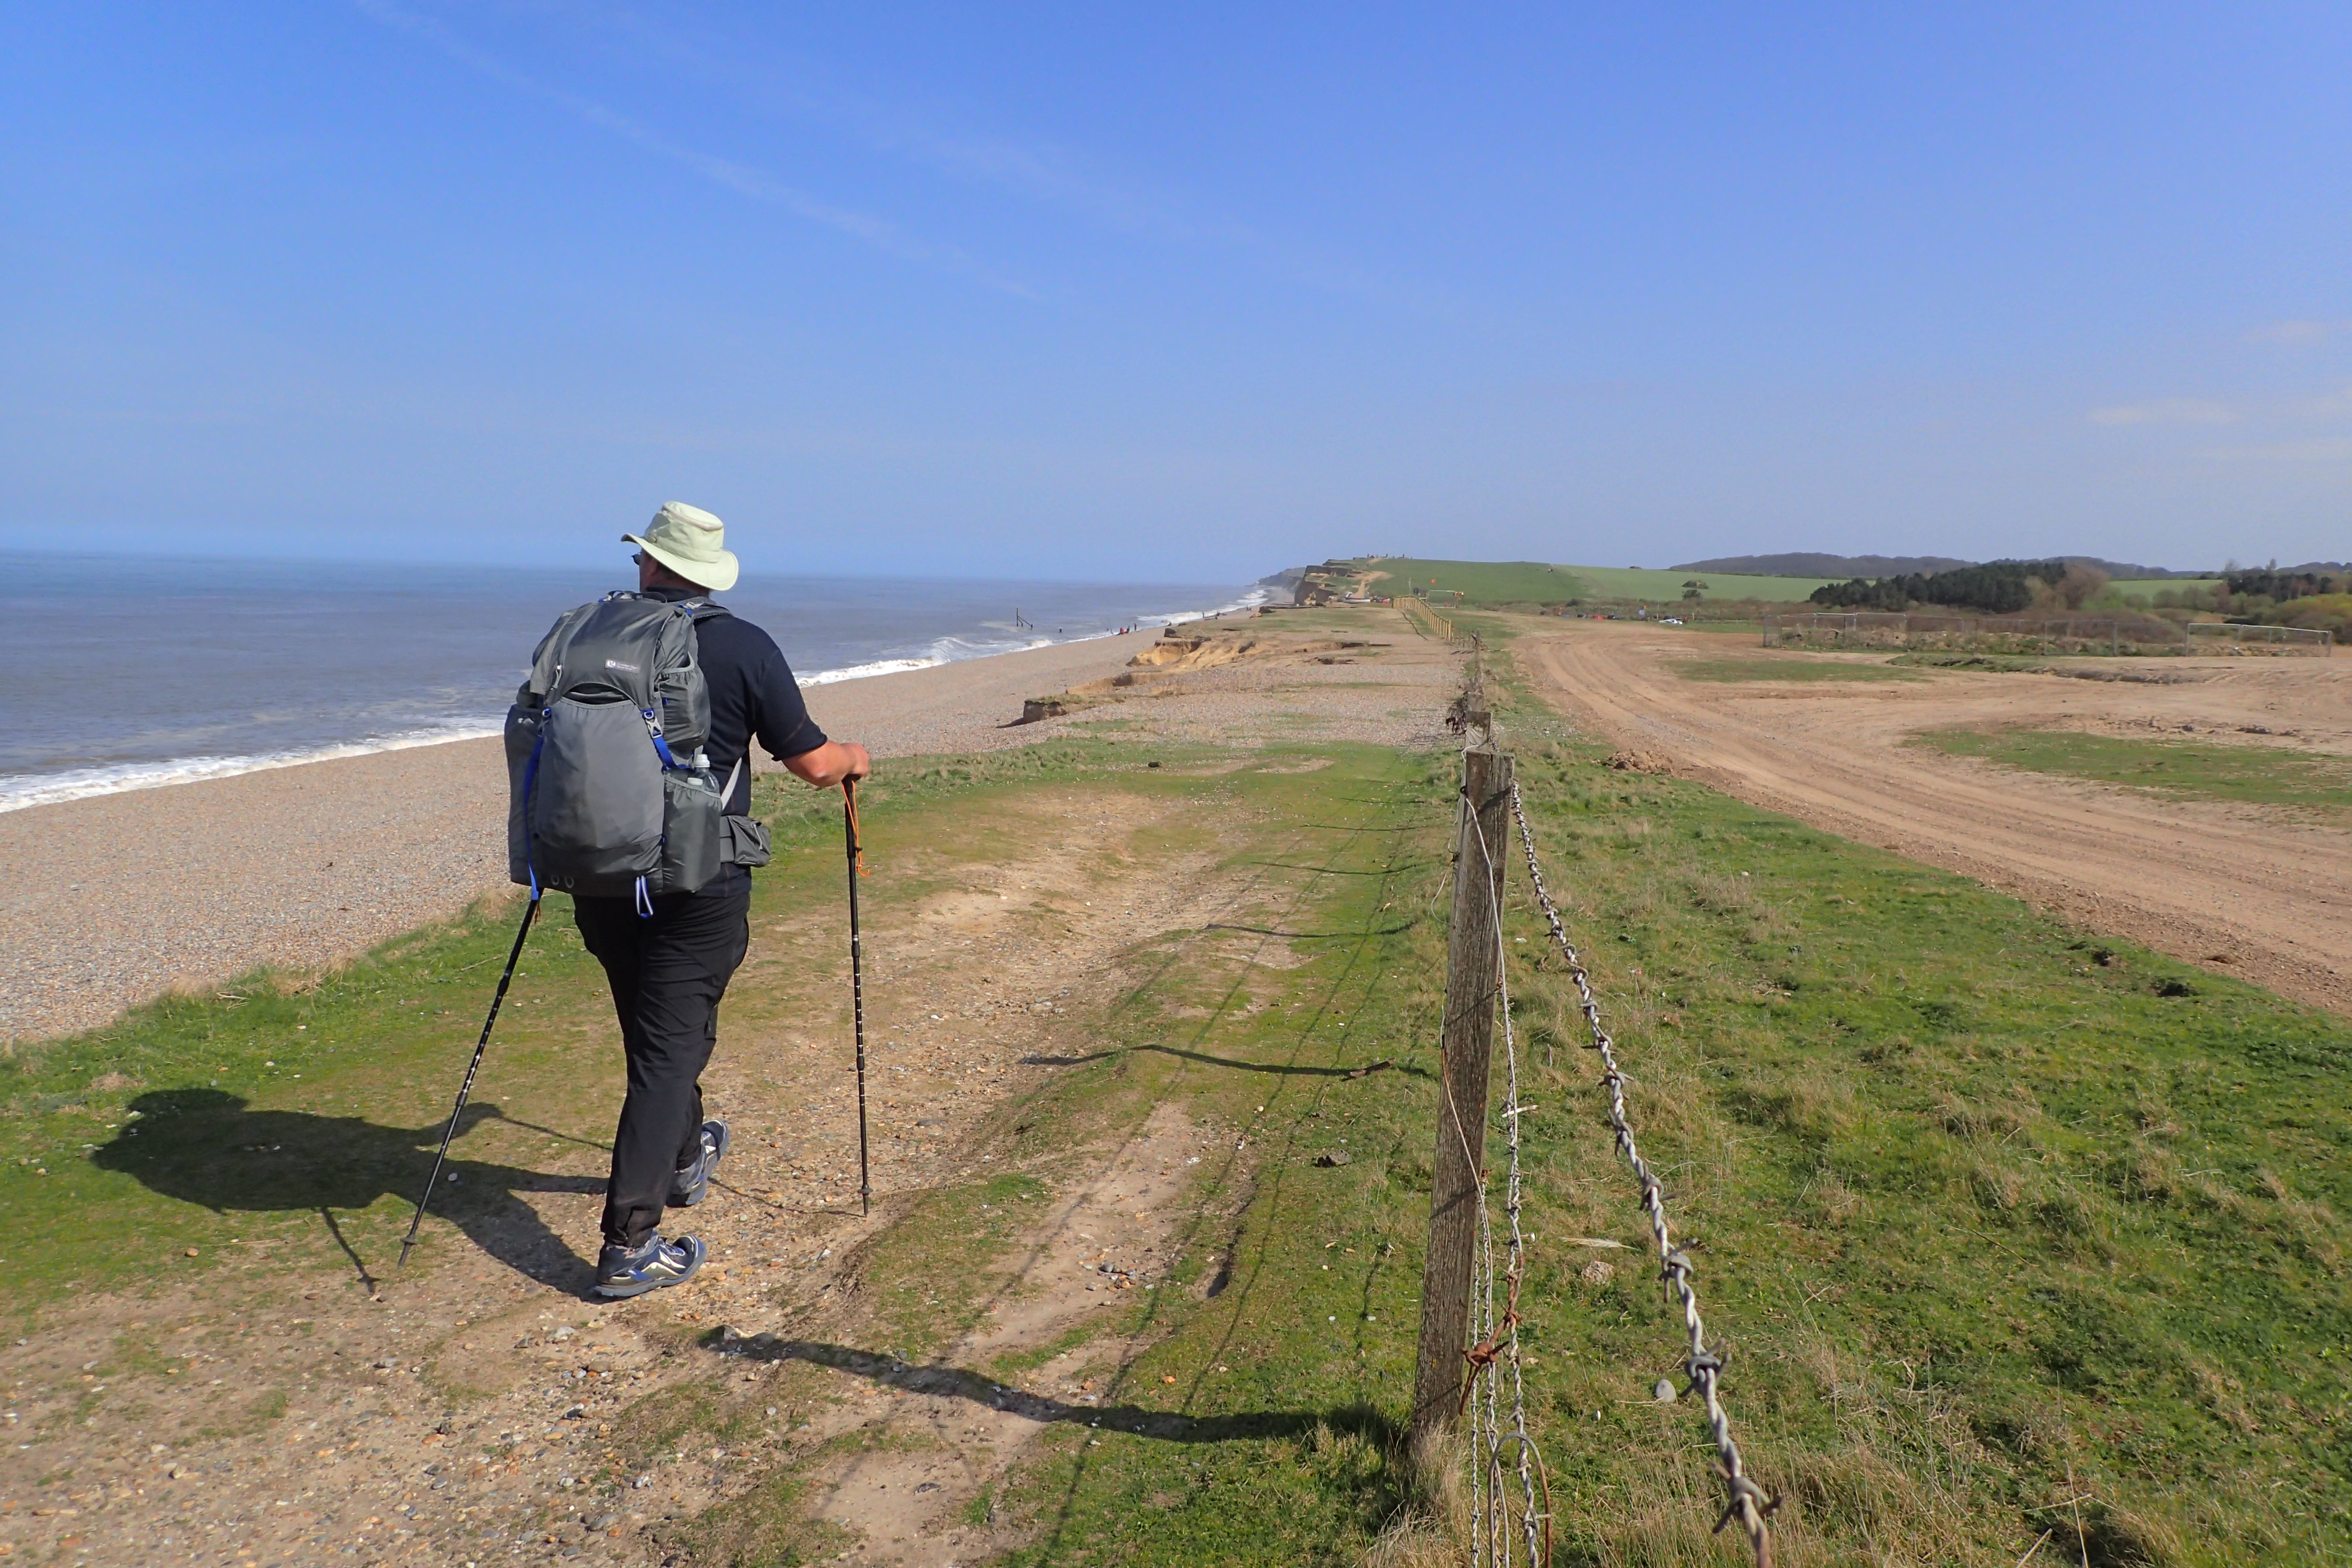 Beyond Weybourne Hope the path begins to climb as cliffs take over. This penultimate day saw me completing my biggest climb of the whole trail- the highest point was still only 346 feet (105 metres) above sea level. Norfolk really is a pretty flat county